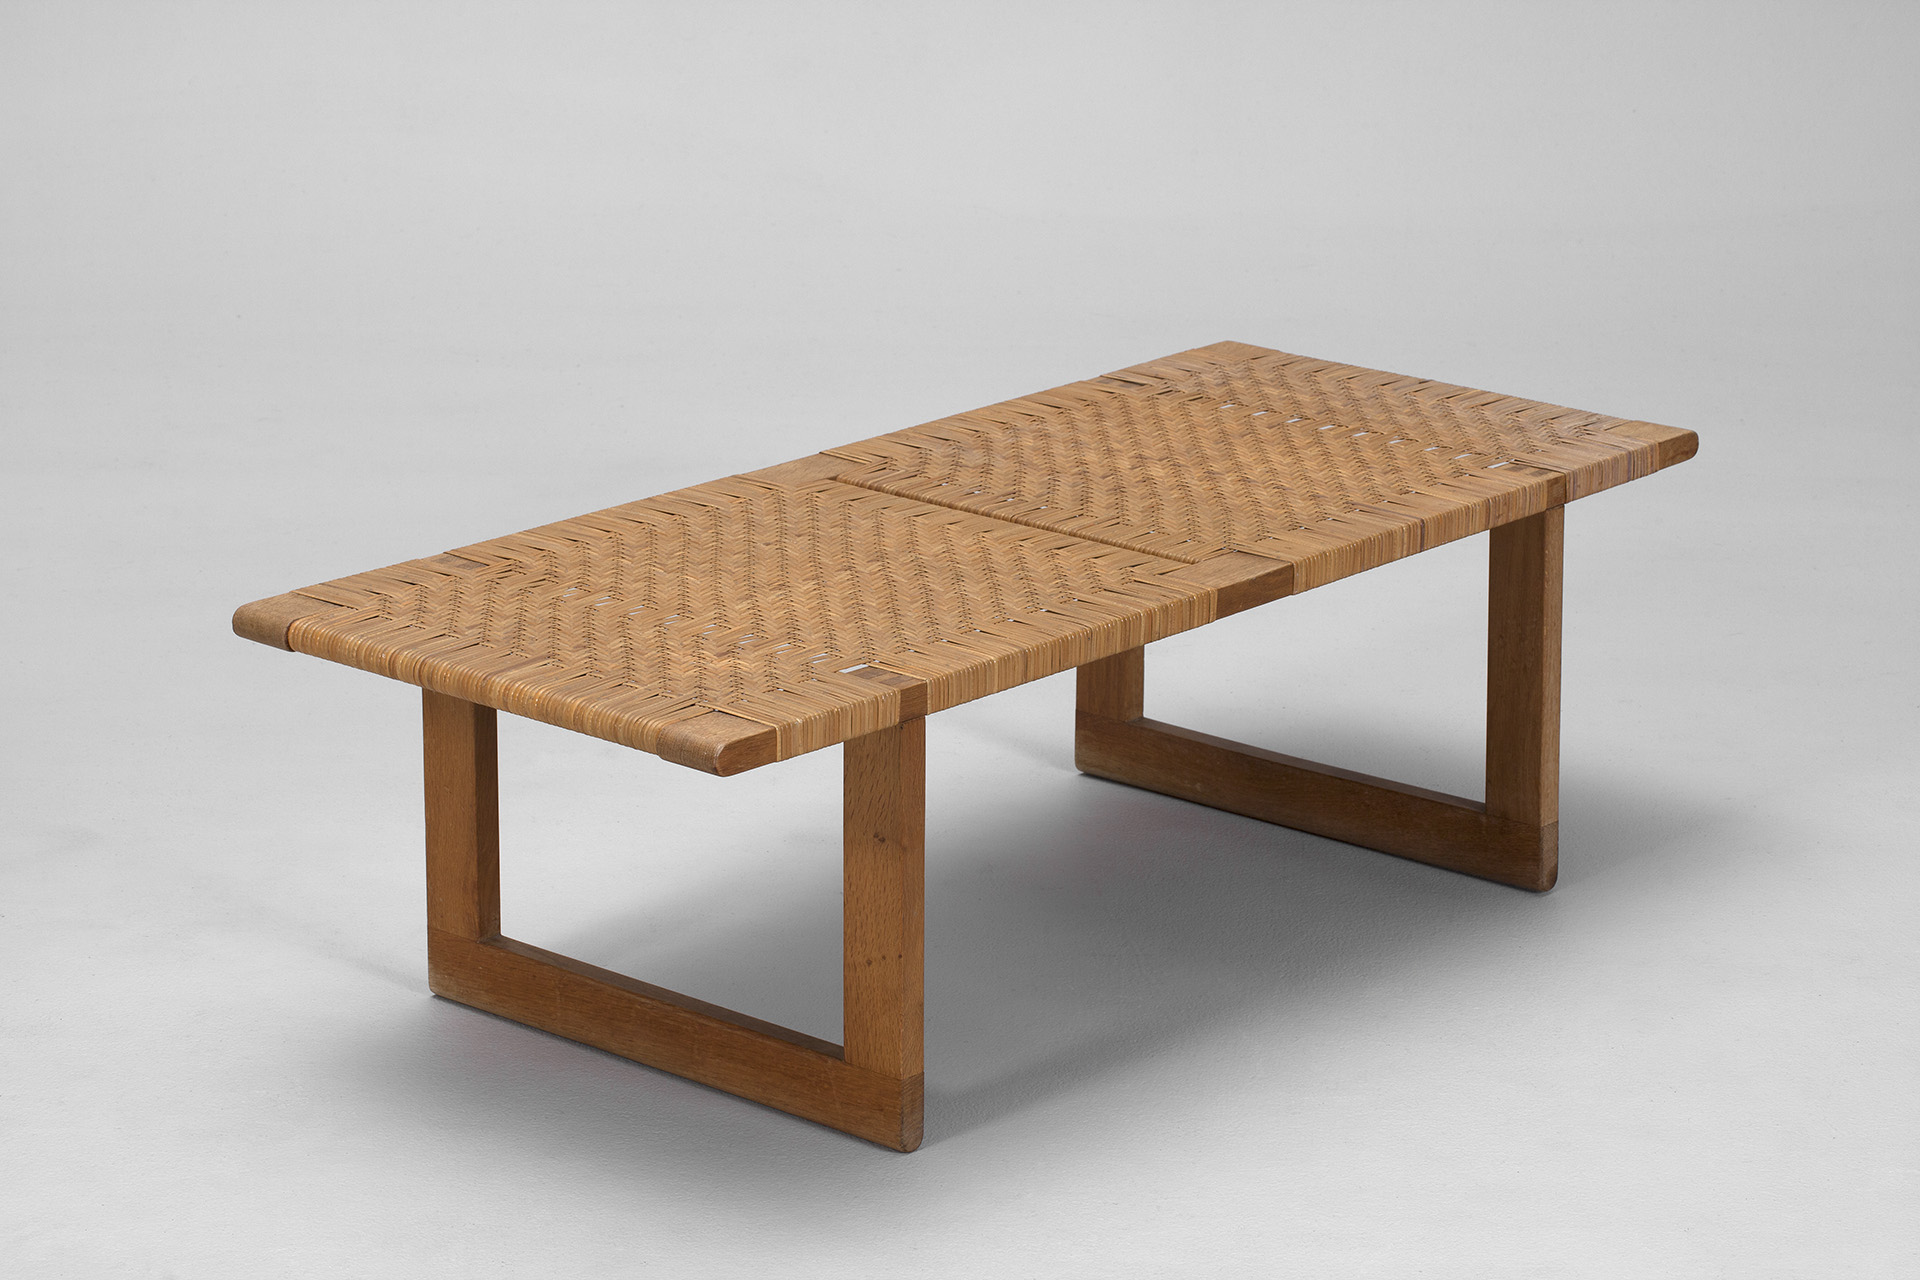 Pair of Benches / Tables